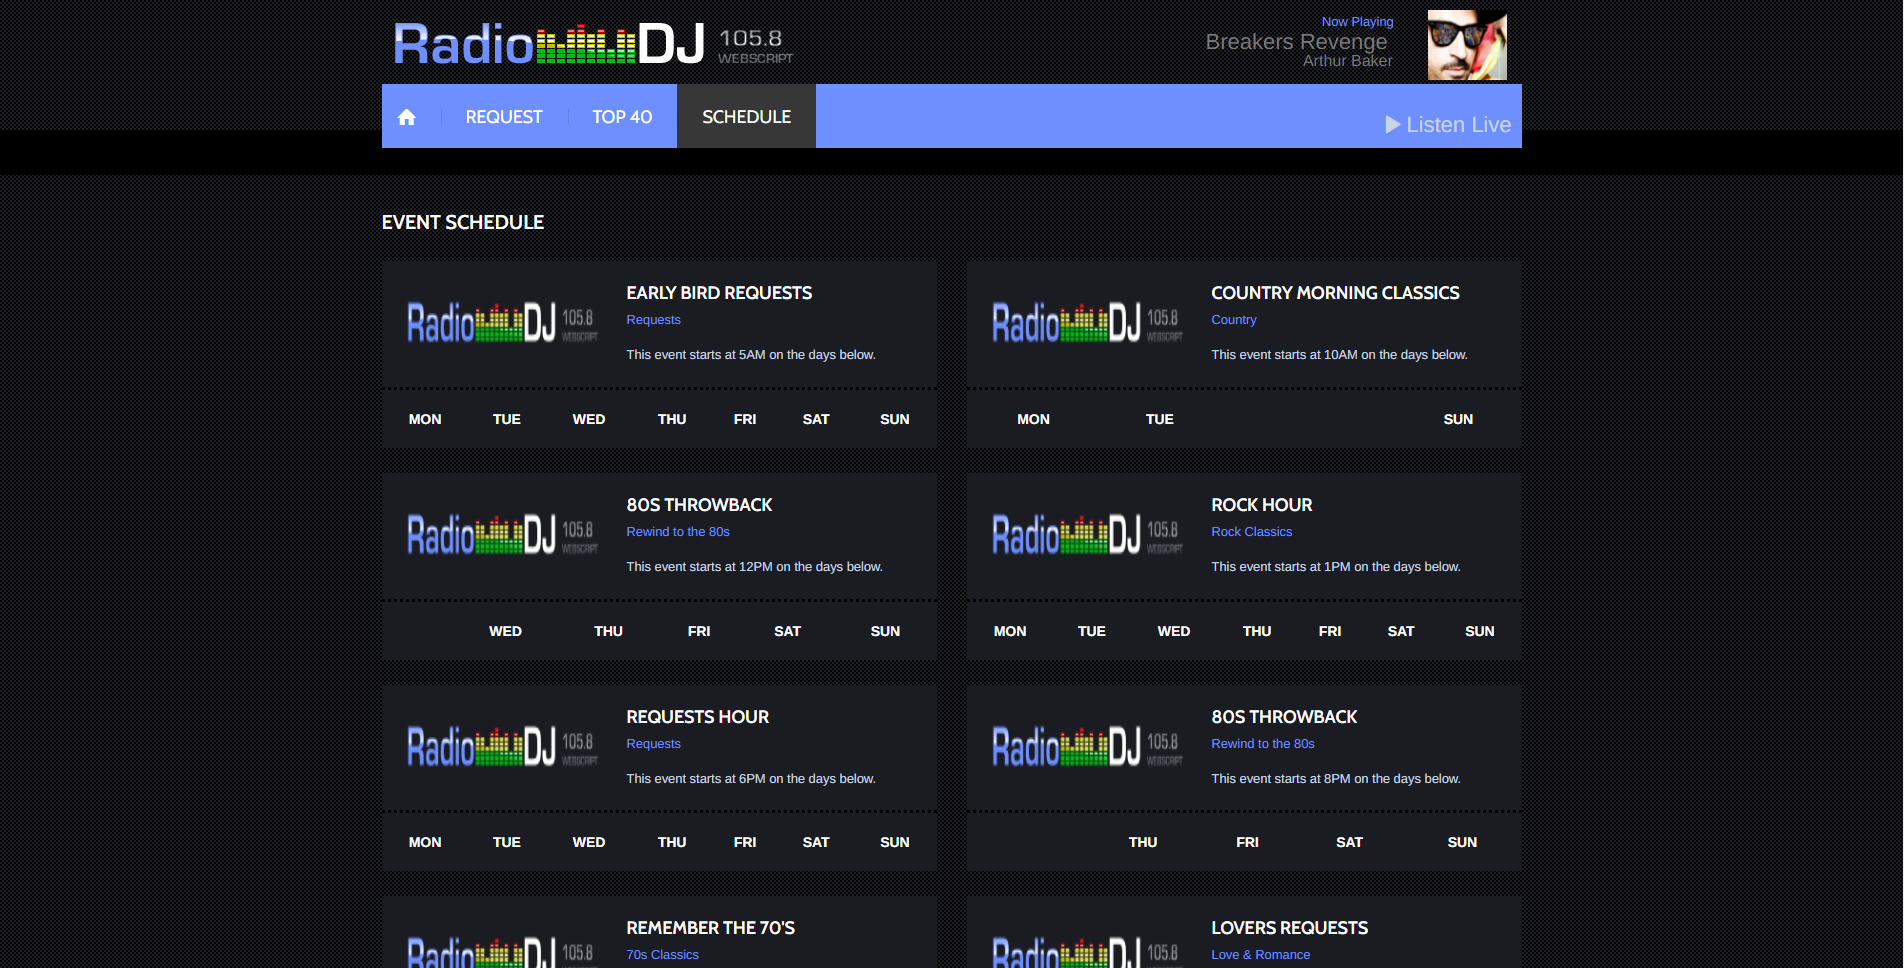 RadioDJ 105.8 Webscript